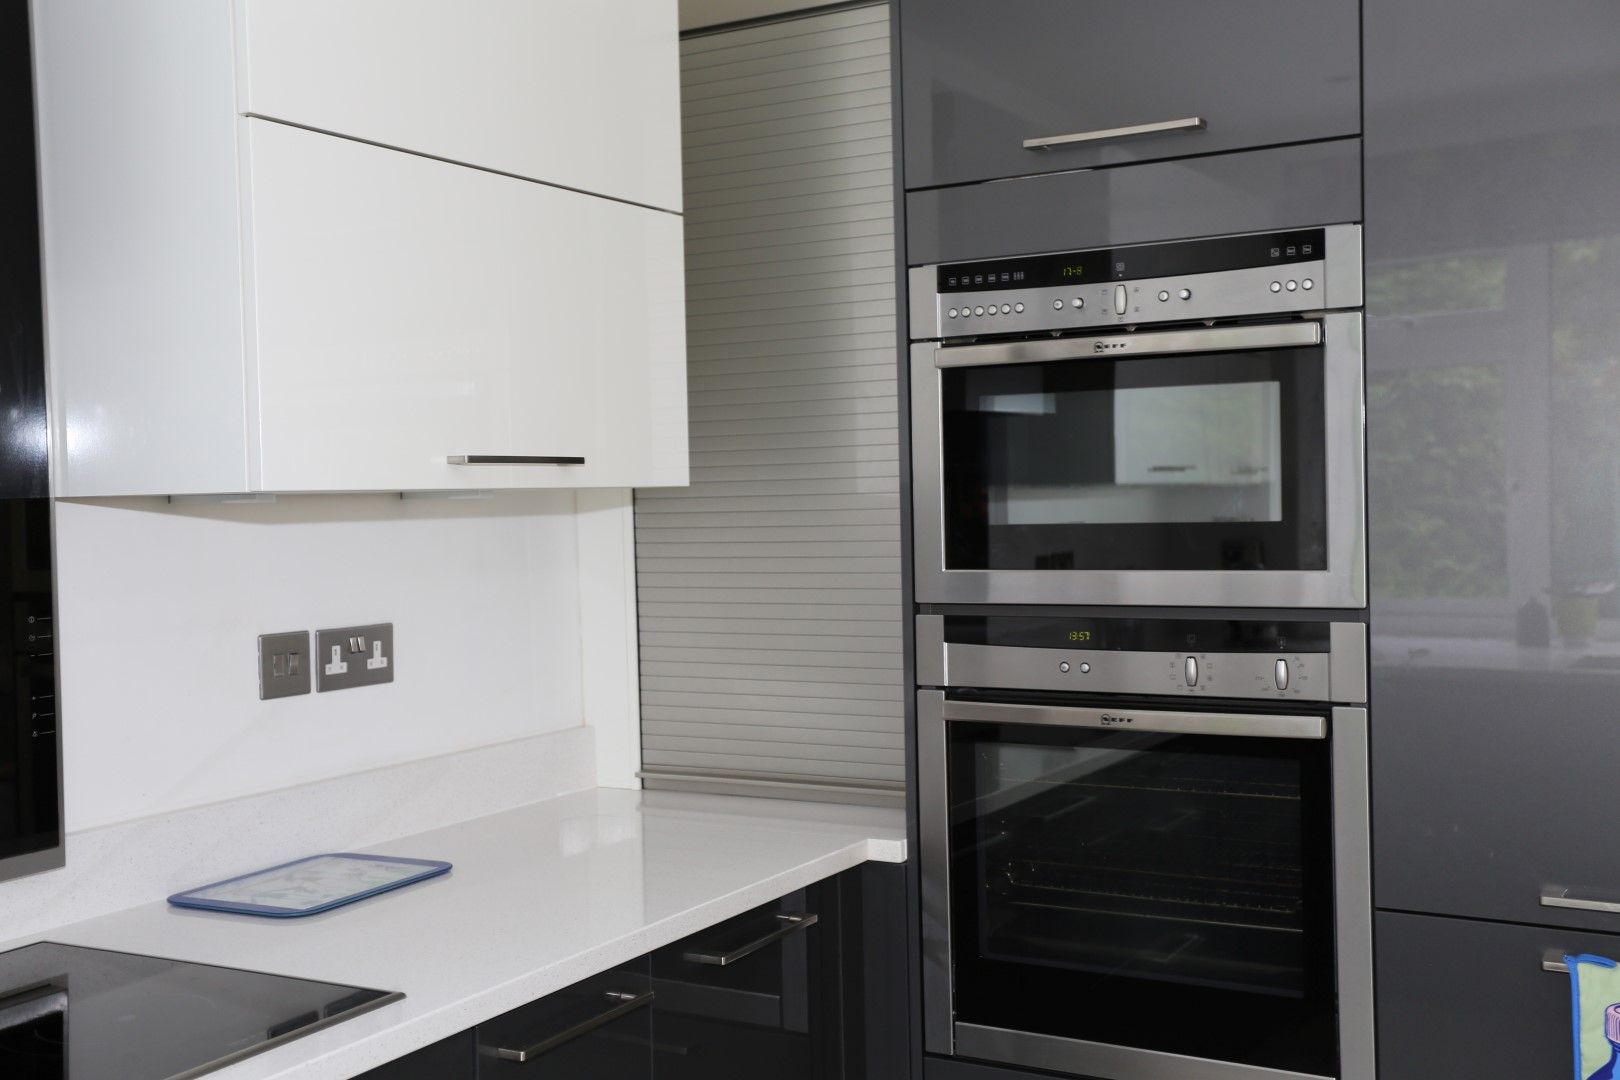 Shiny magnolia cream and anthracite grey kitchen neff oven for Lifestyle kitchen units